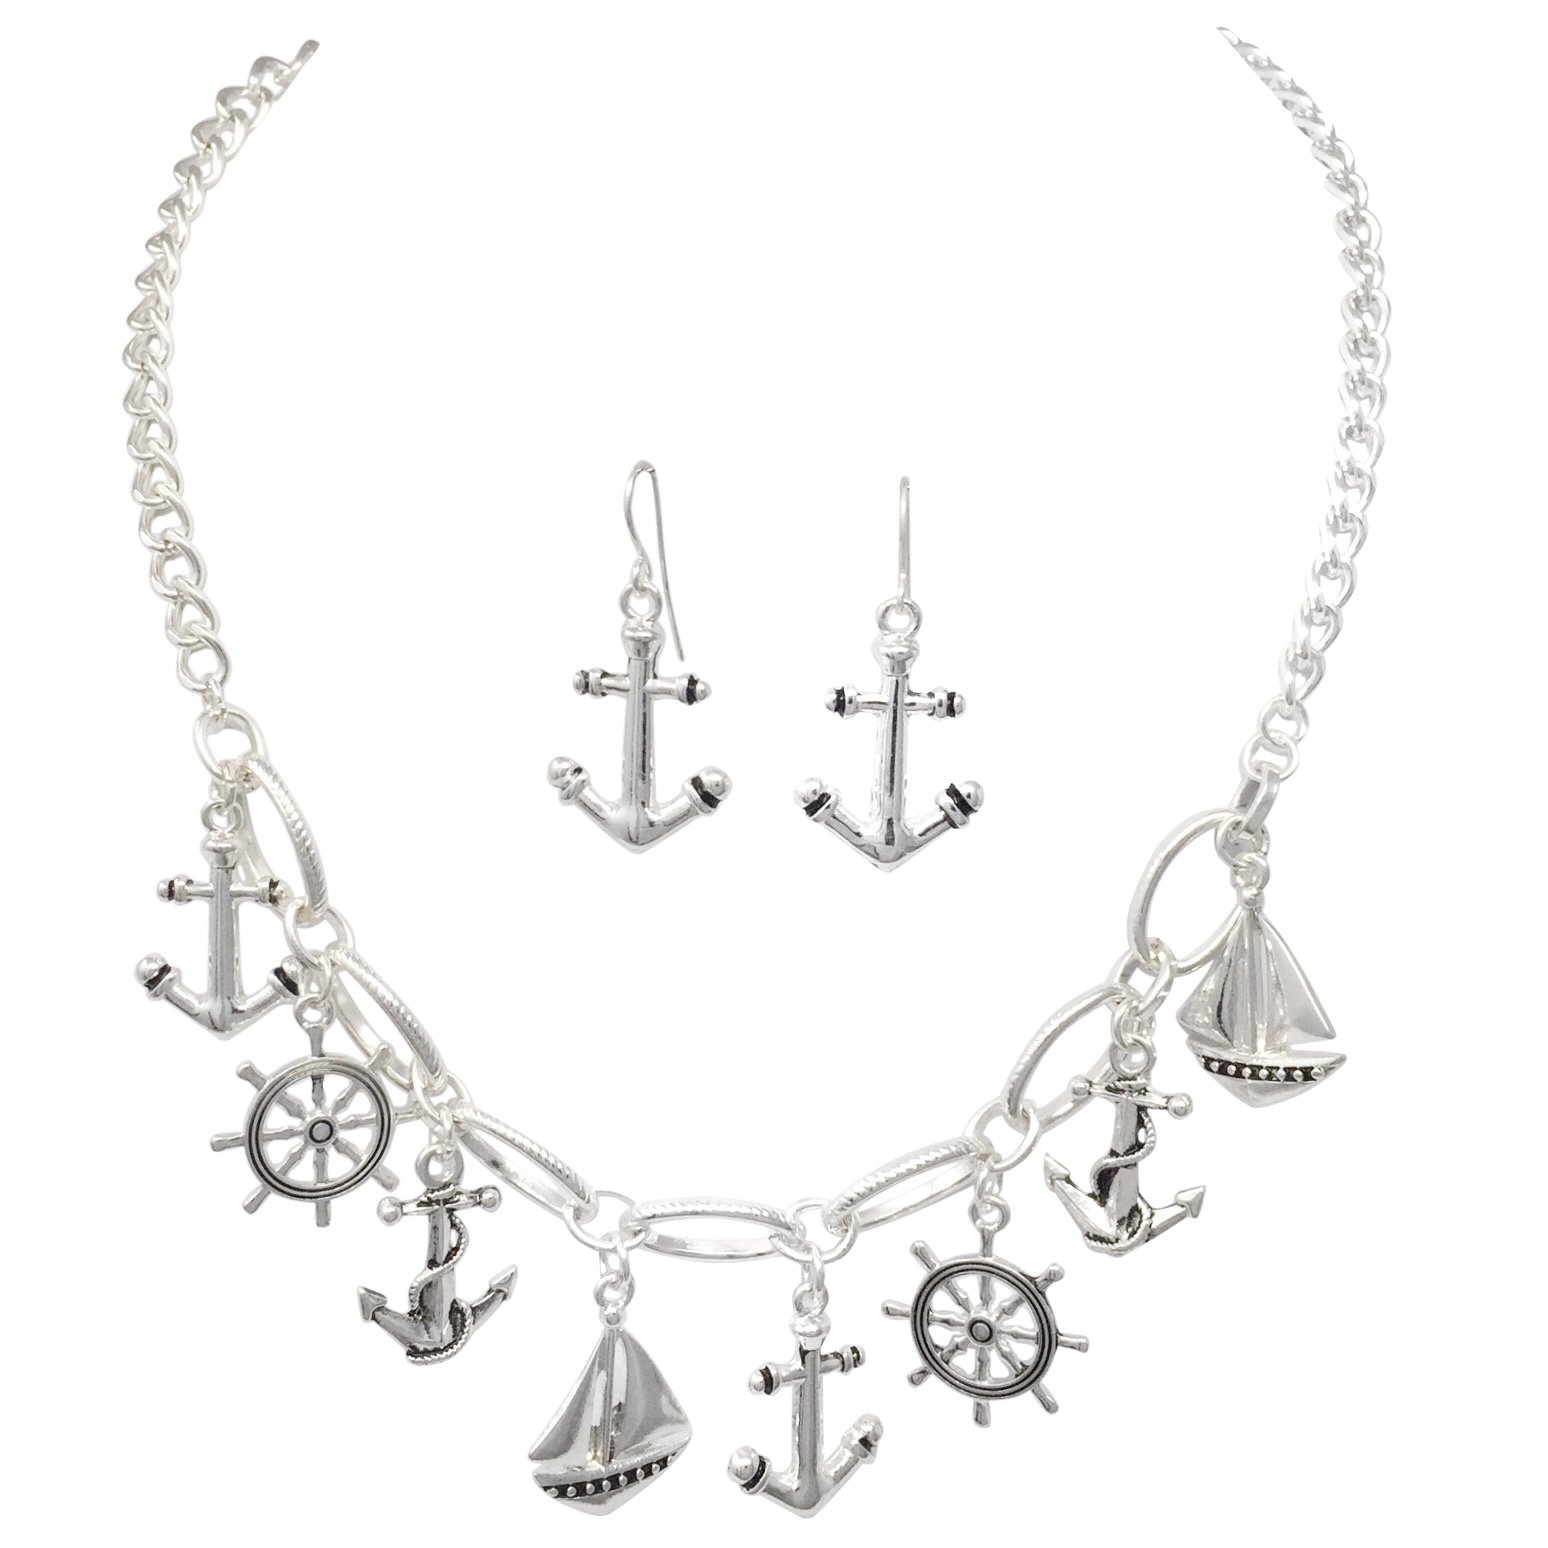 Nautical Charm Theme Silver Tone Necklace & Dangle Earrings Set (Anchor Ship Wheel Sailboat)